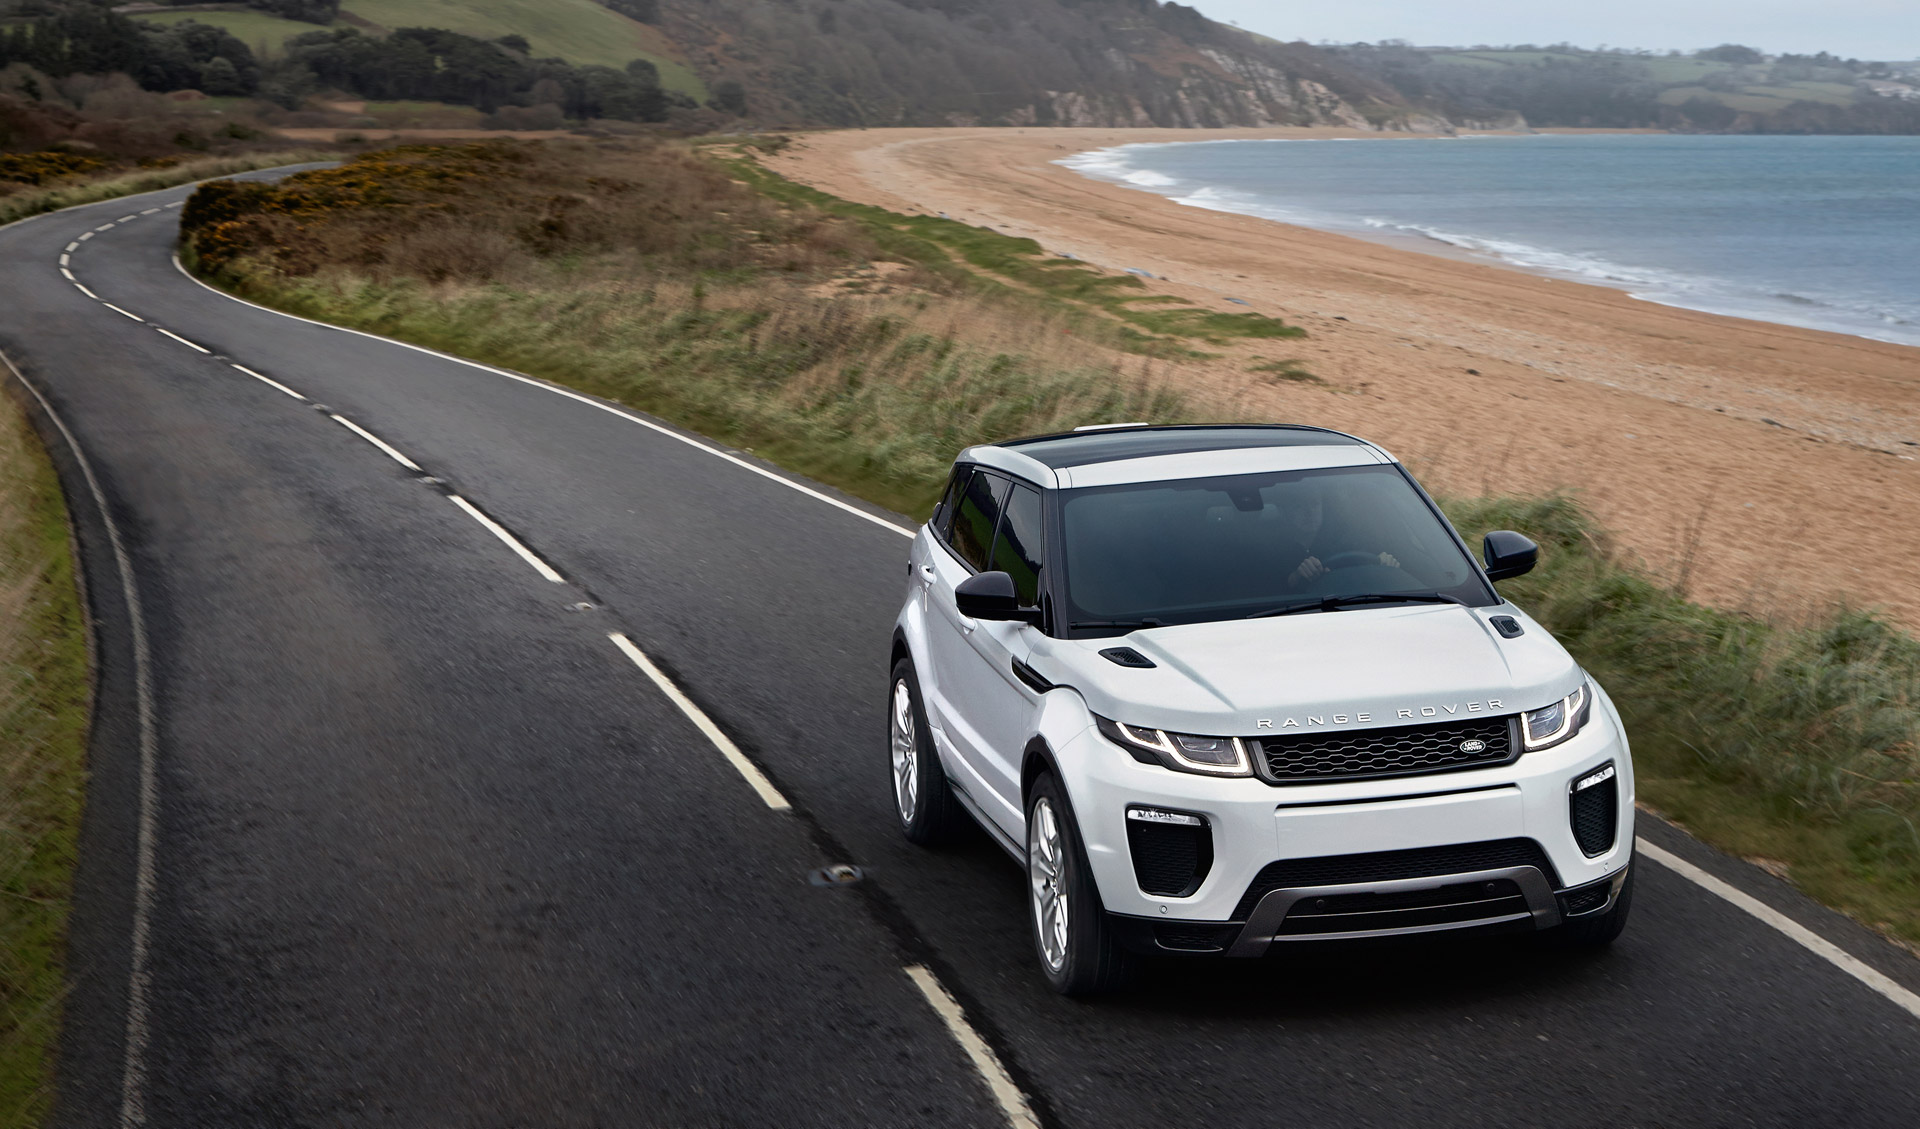 2016 land rover range rover evoque revealed with led headlights, new engine